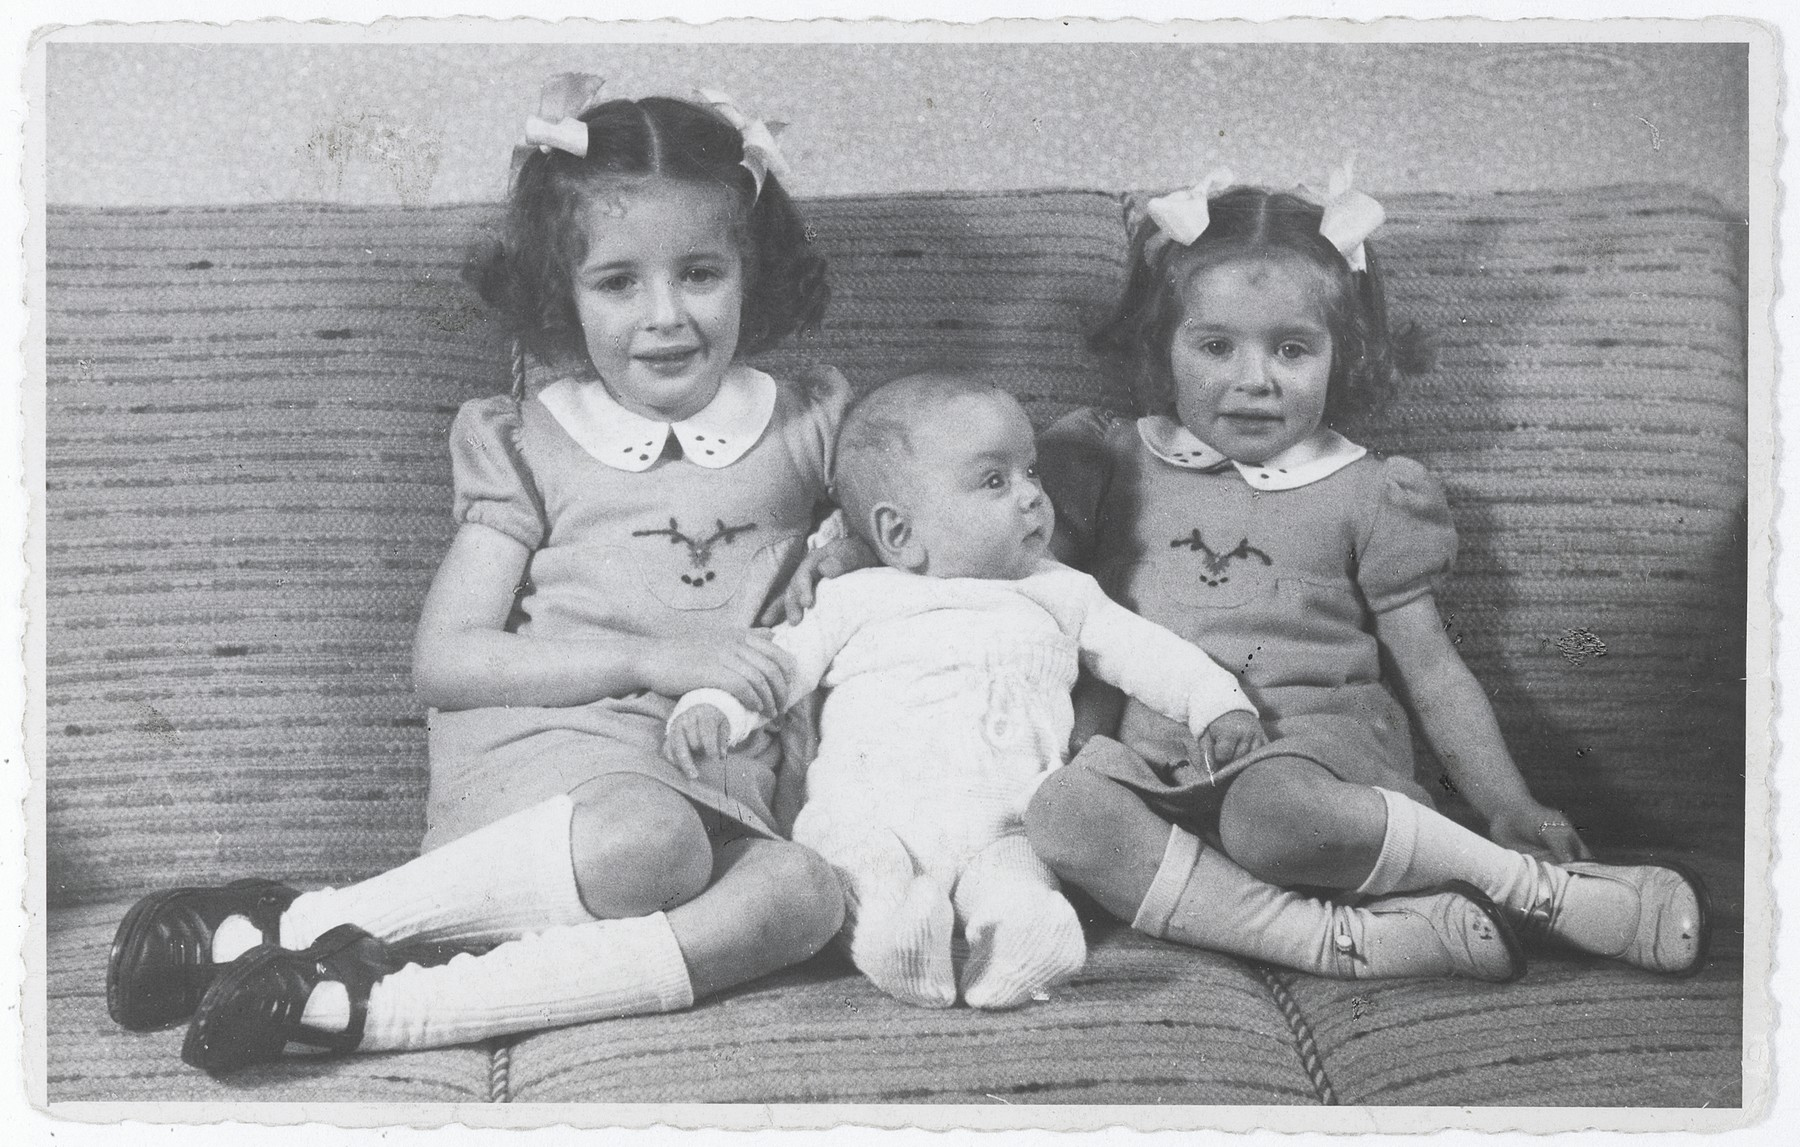 Three Jewish siblings pose on a sofa in their home in The Hague.  Pictured from left to right are Eva, Alfred and Leana Münzer.  The two girls later perished in Auschwitz.